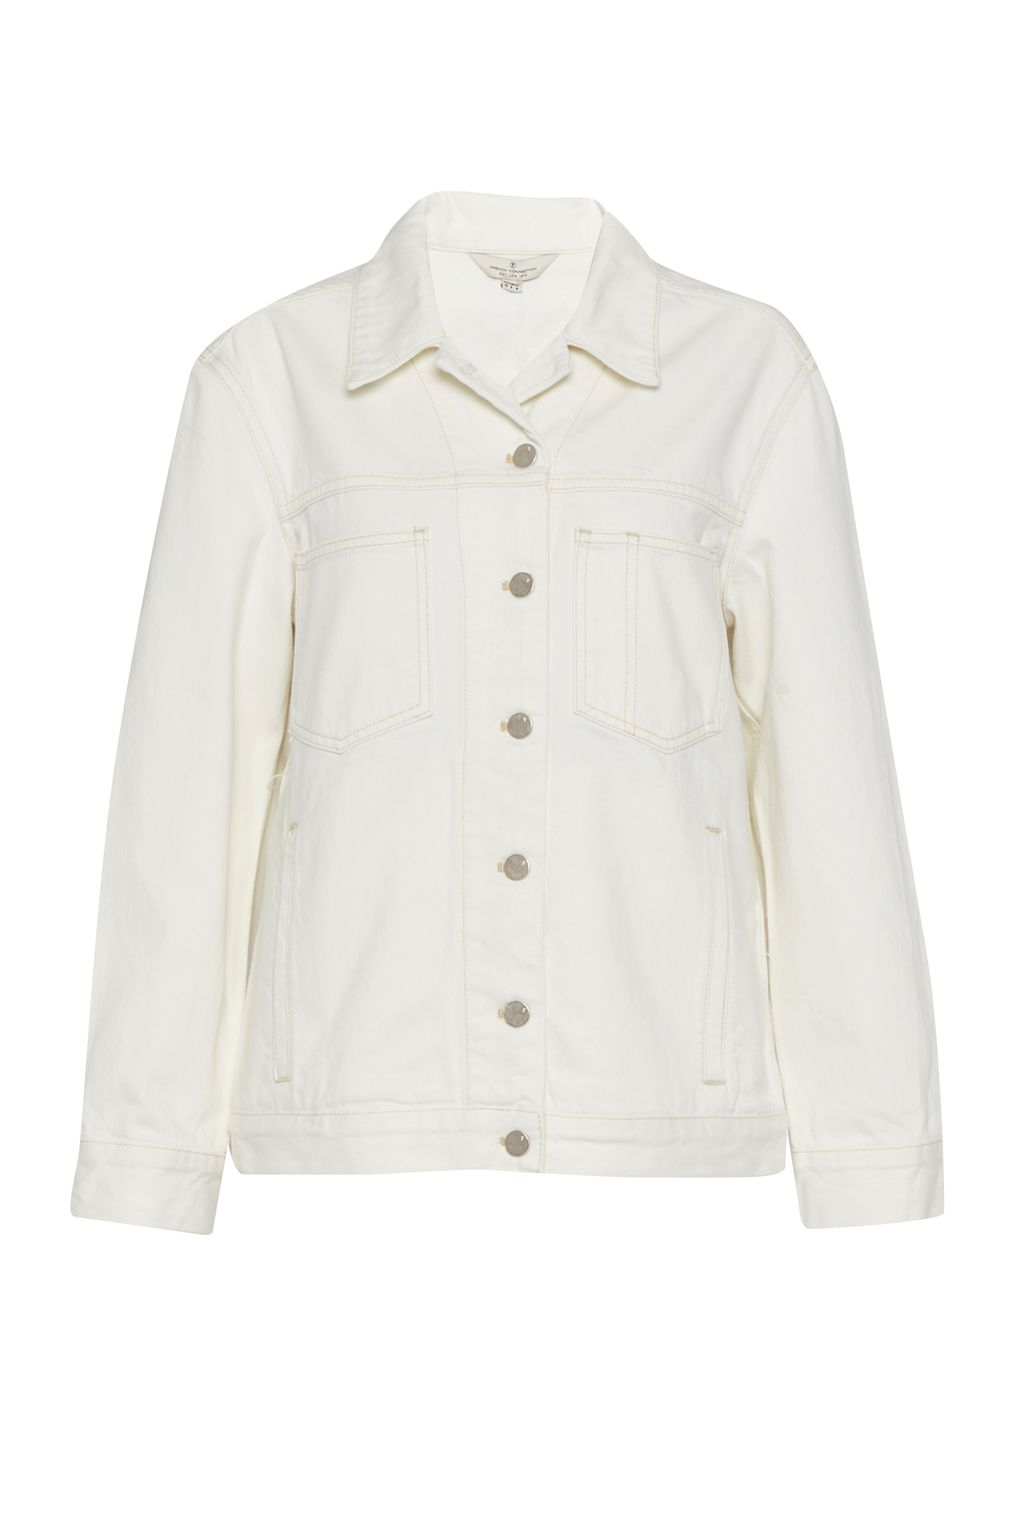 French Connection Perret Utility Denim Jacket, Cream